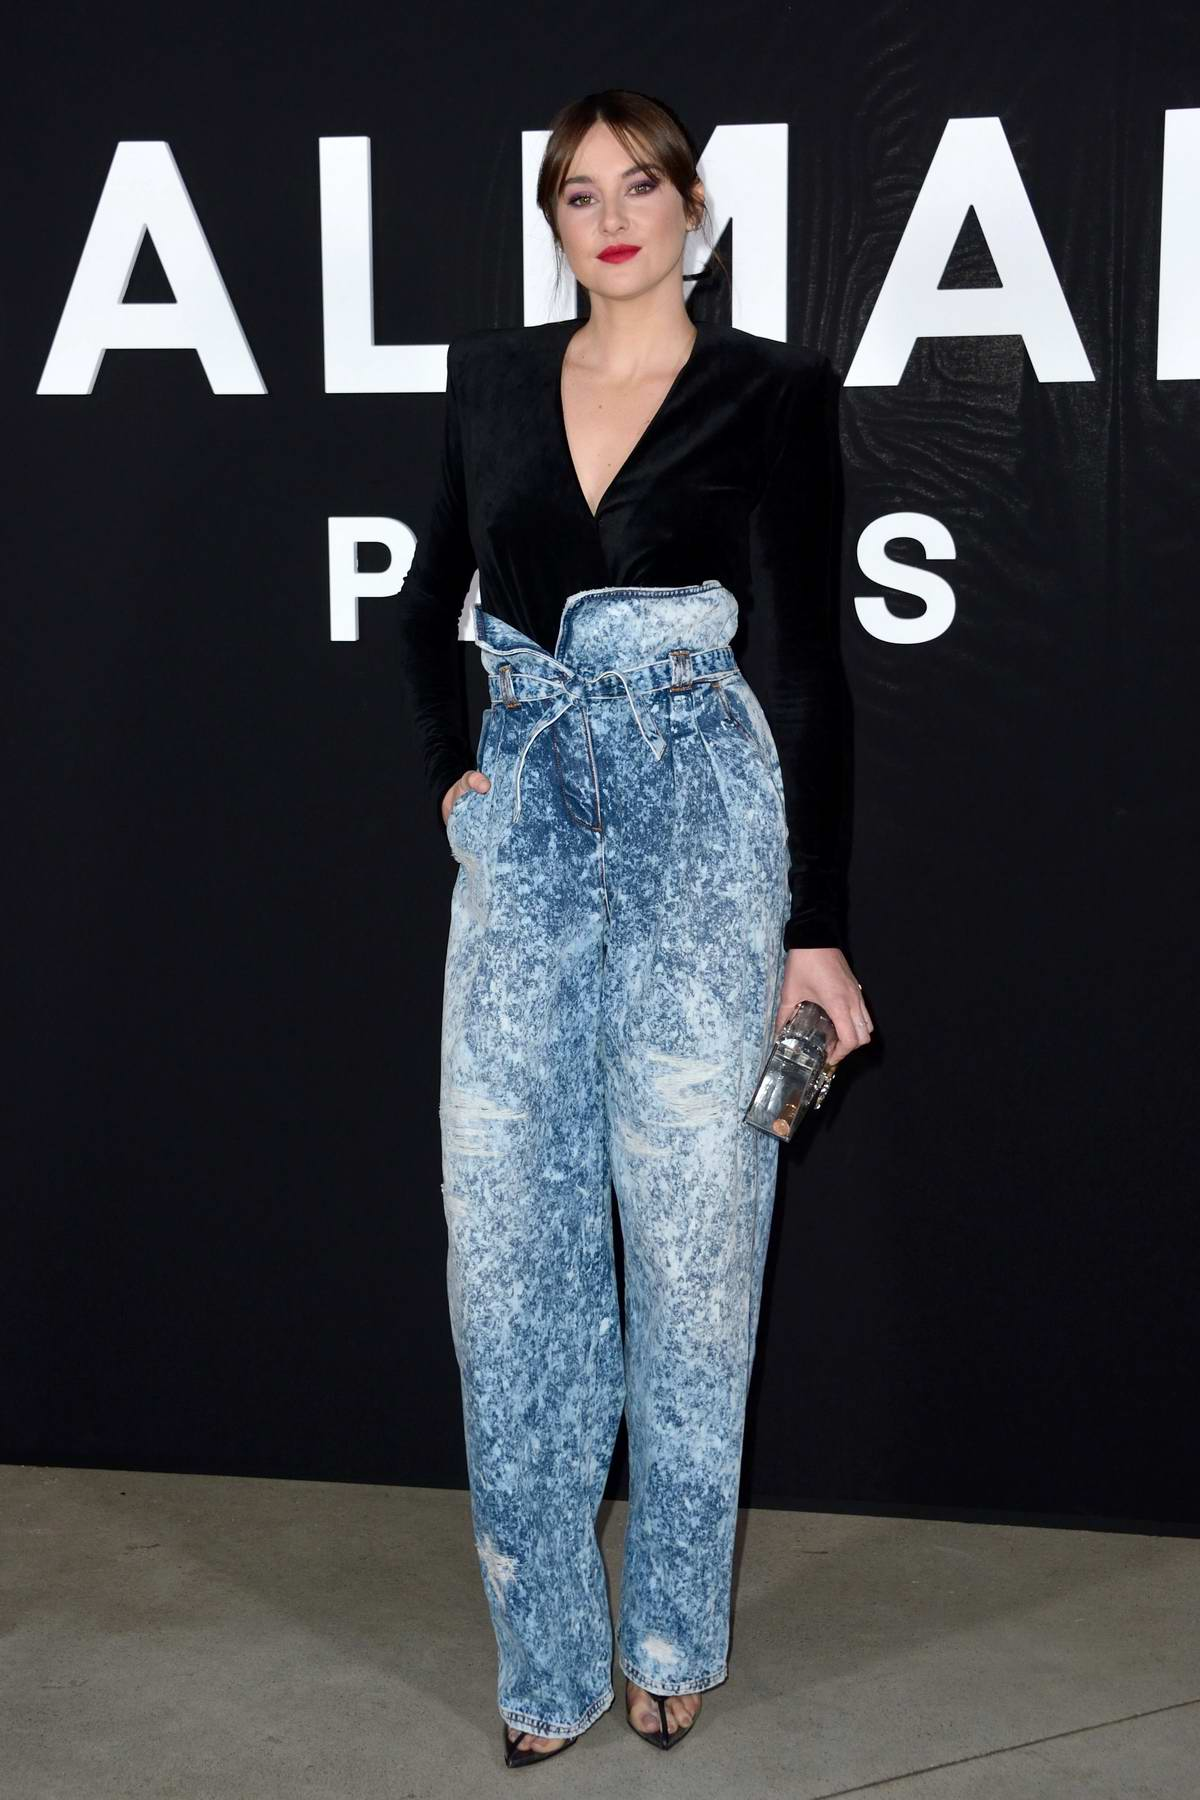 Shailene Woodley attends the Balmain show during the Paris Fashion Week Womenswear F/W 2019/20 in Paris, France